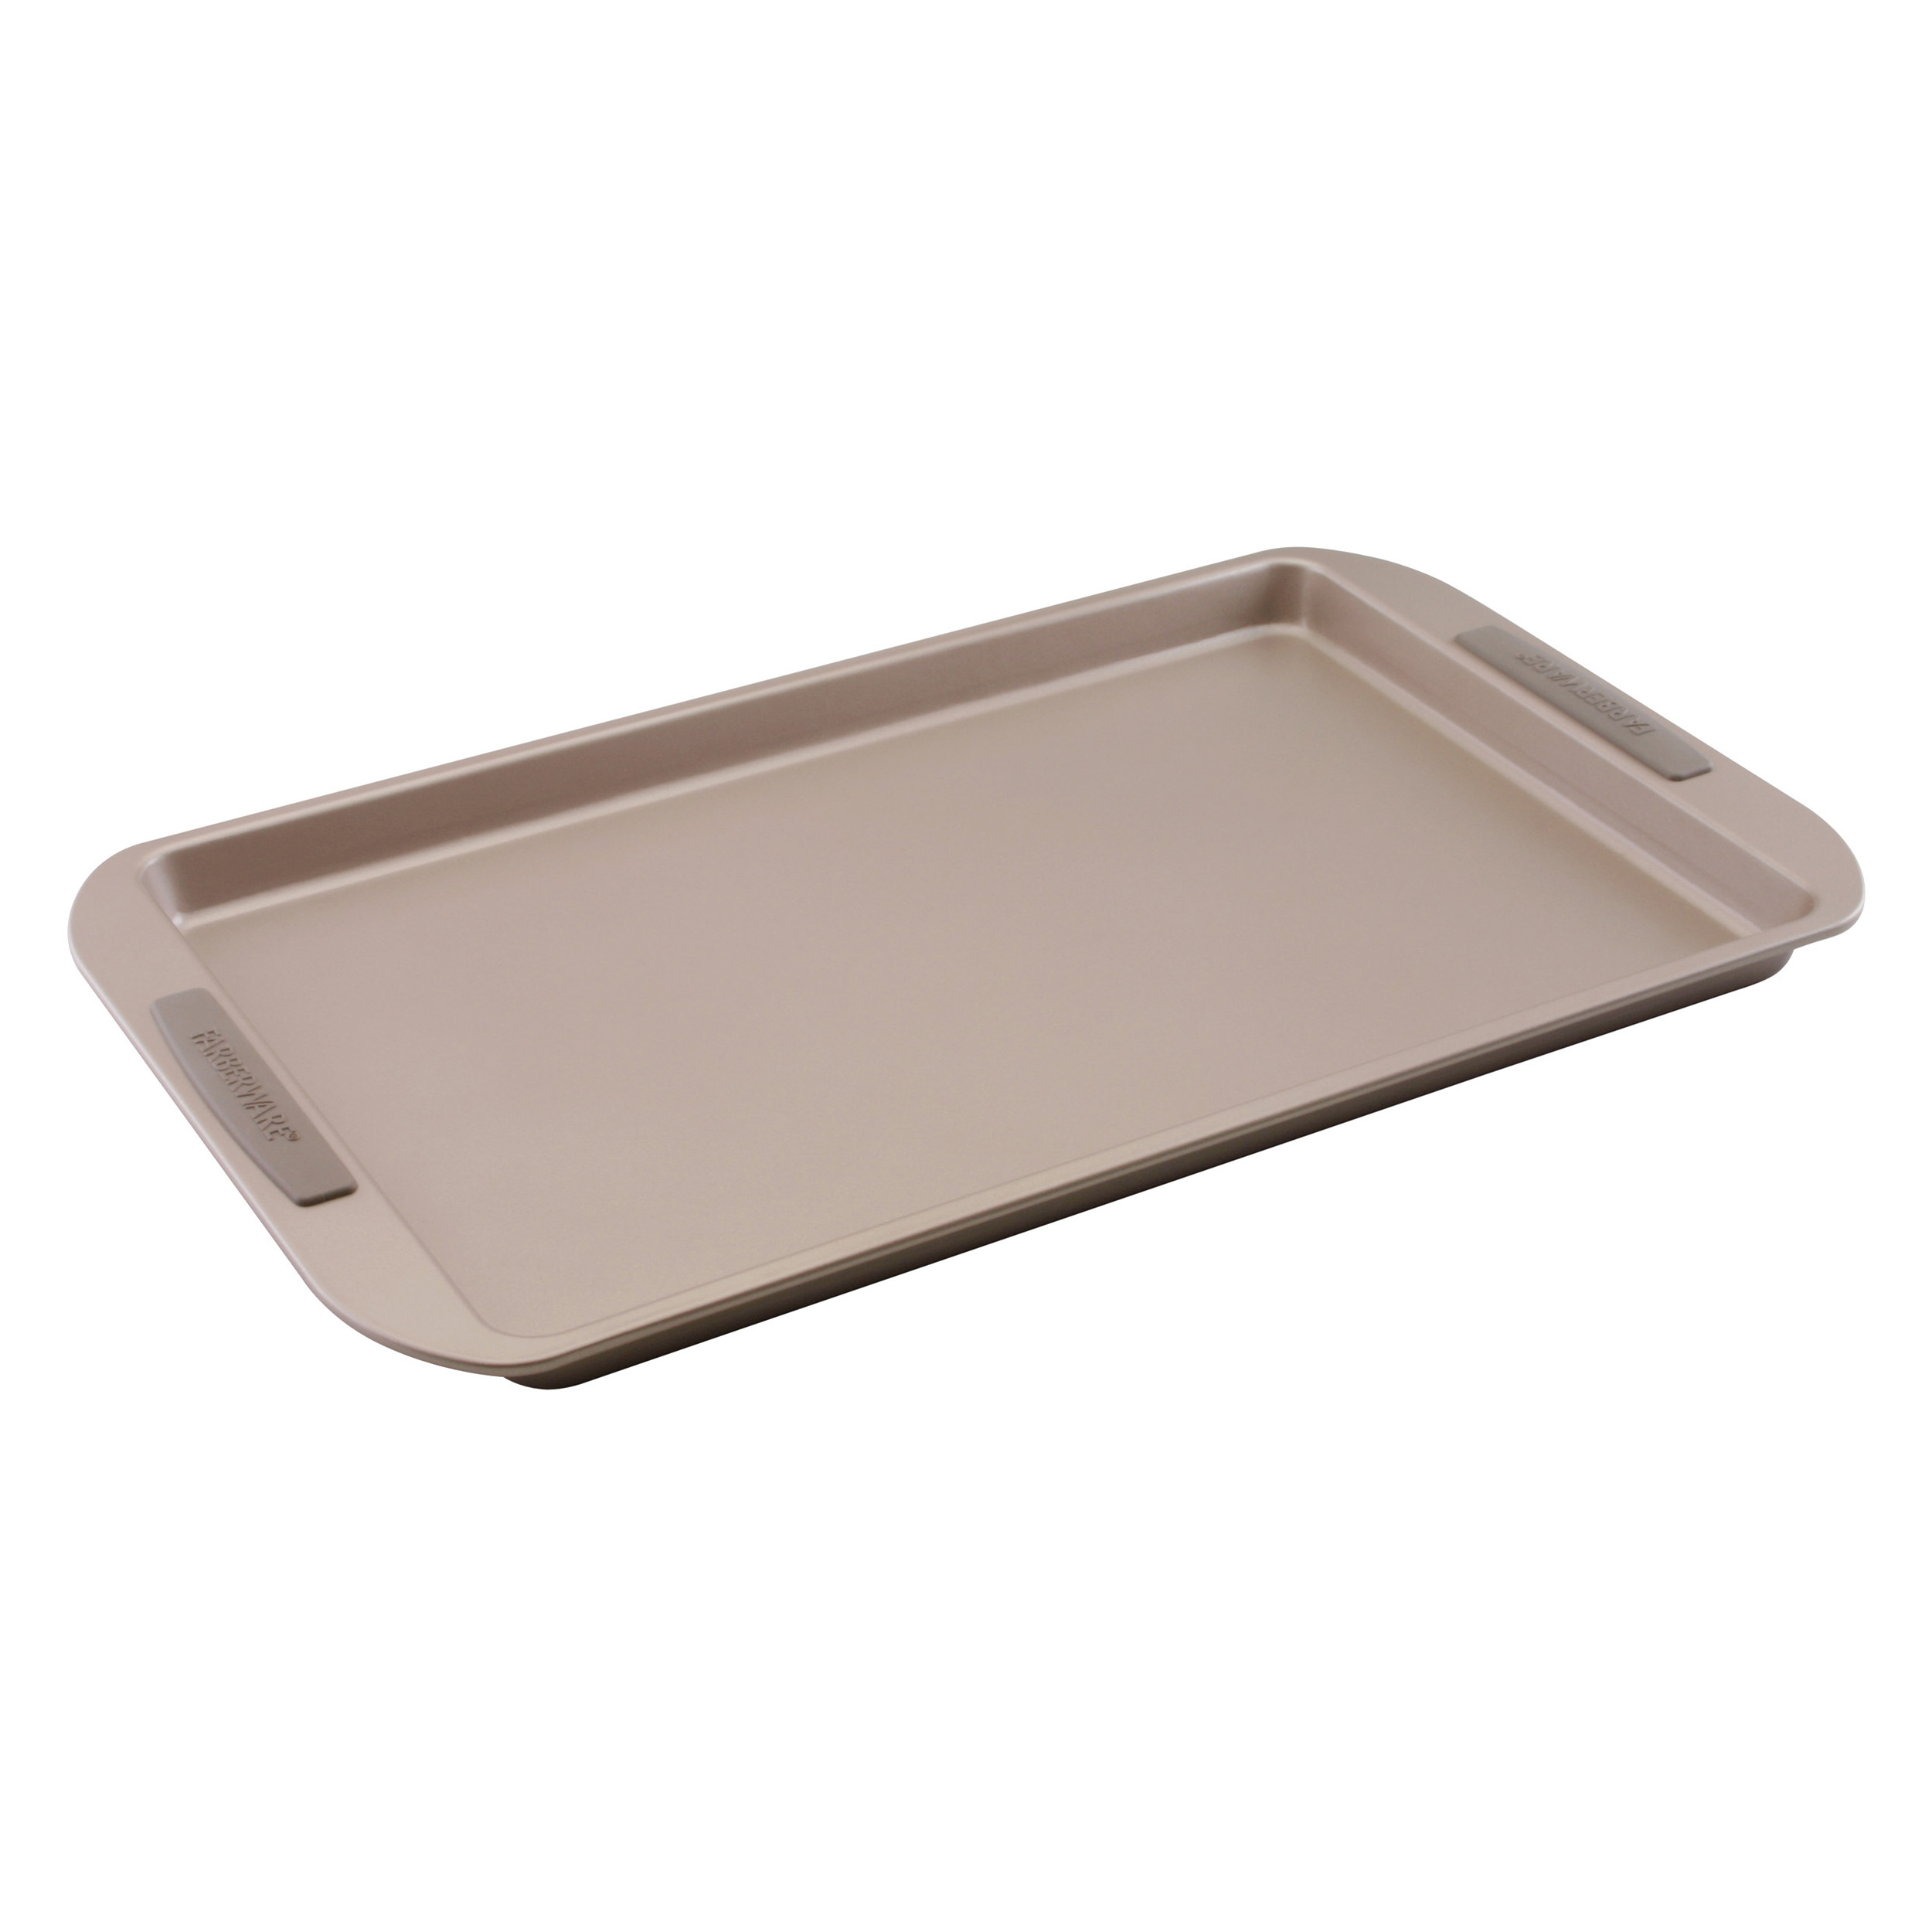 Farberware Nonstick Gray Carbon Steel Cookie Pan with Silicone Grips, 11 x 17 Inch